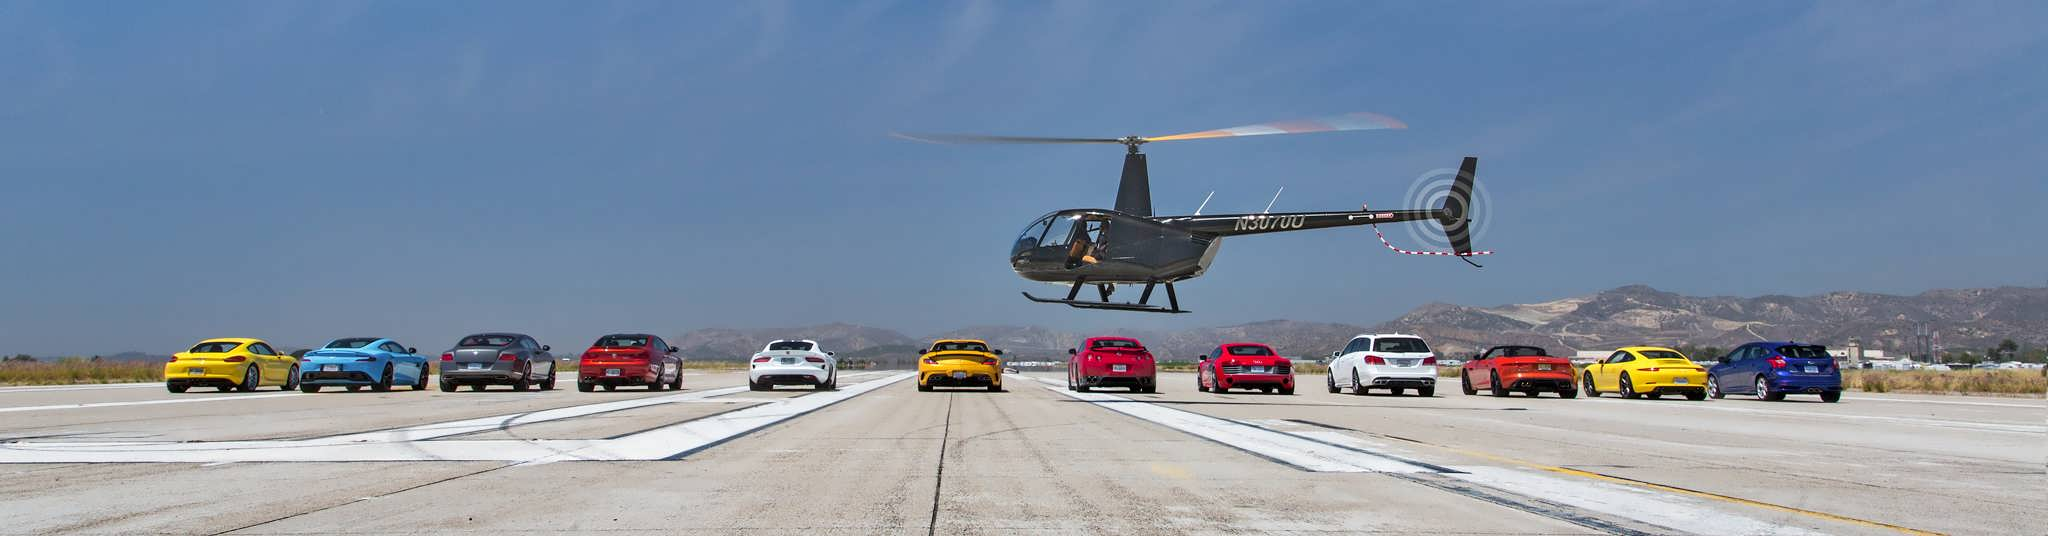 http---image.motortrend.com-f-features-performance-1308_worlds_greatest_drag_race_3-56774170-2013-Best-Drivers-Car-lineup